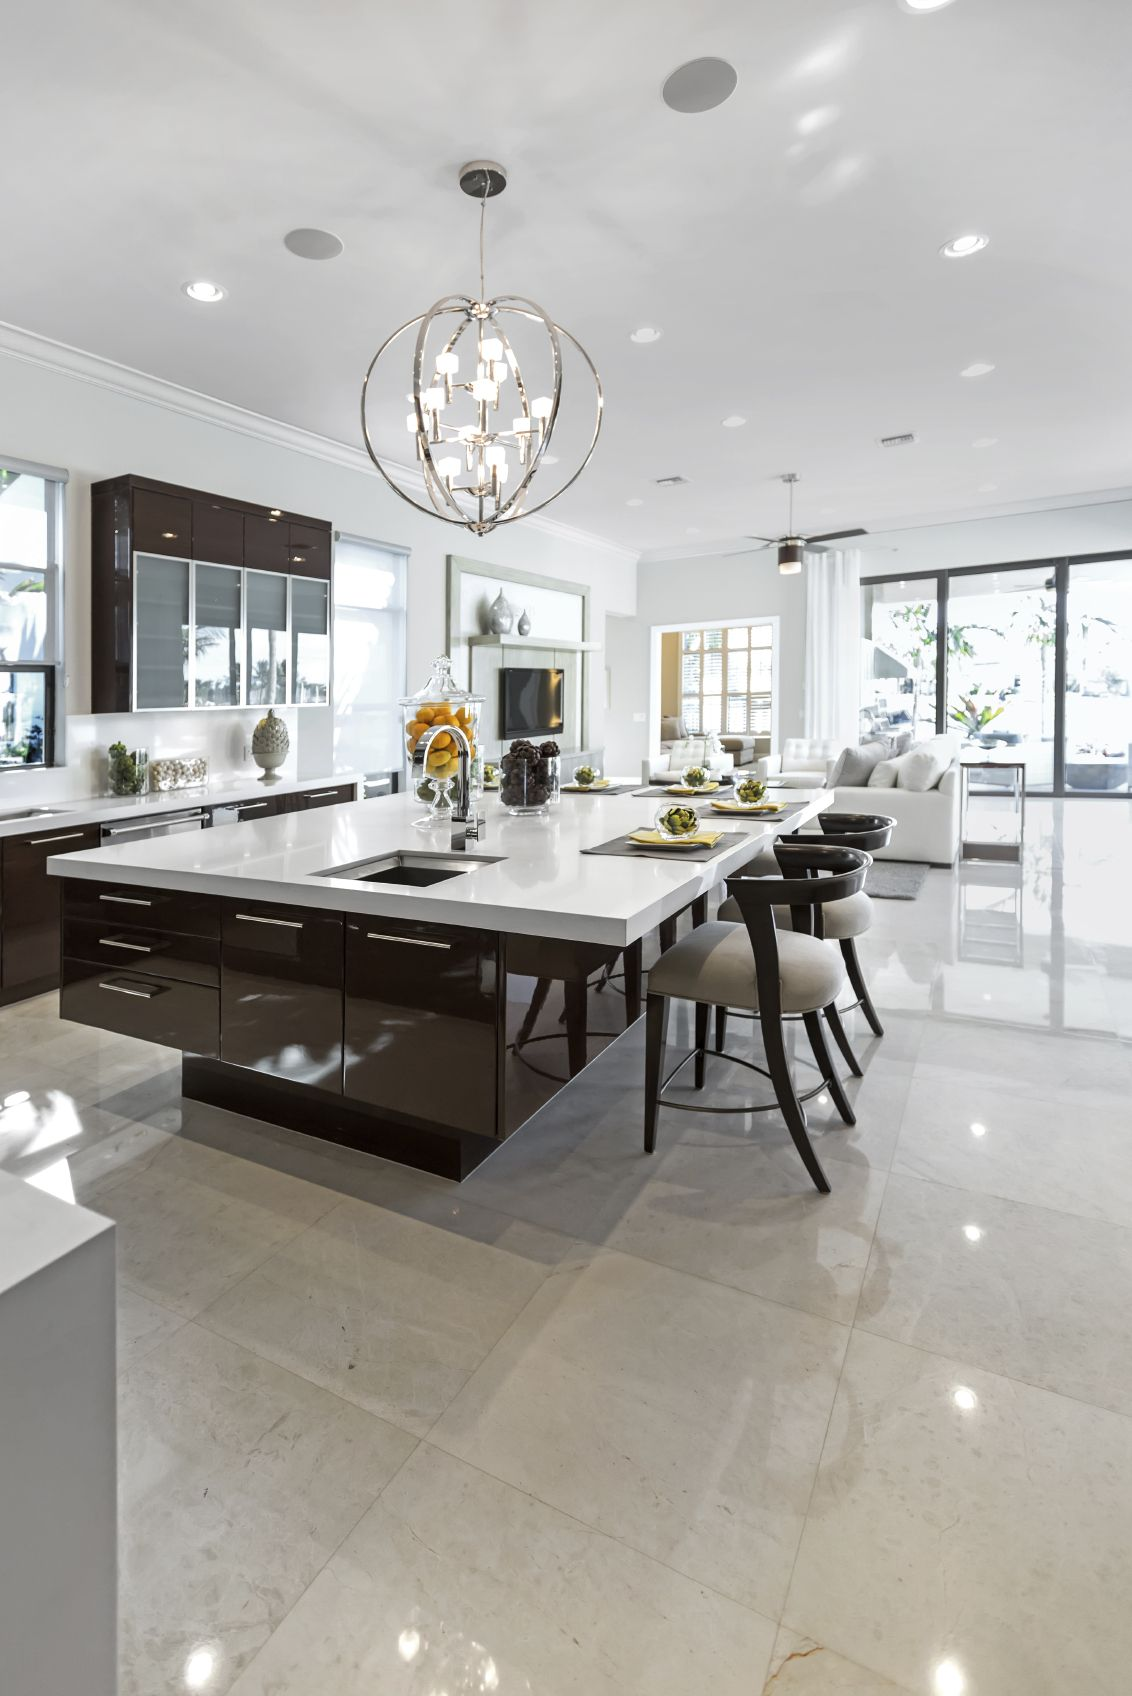 Large modern white and dark brown kitchen with huge modern island with breakfast bar